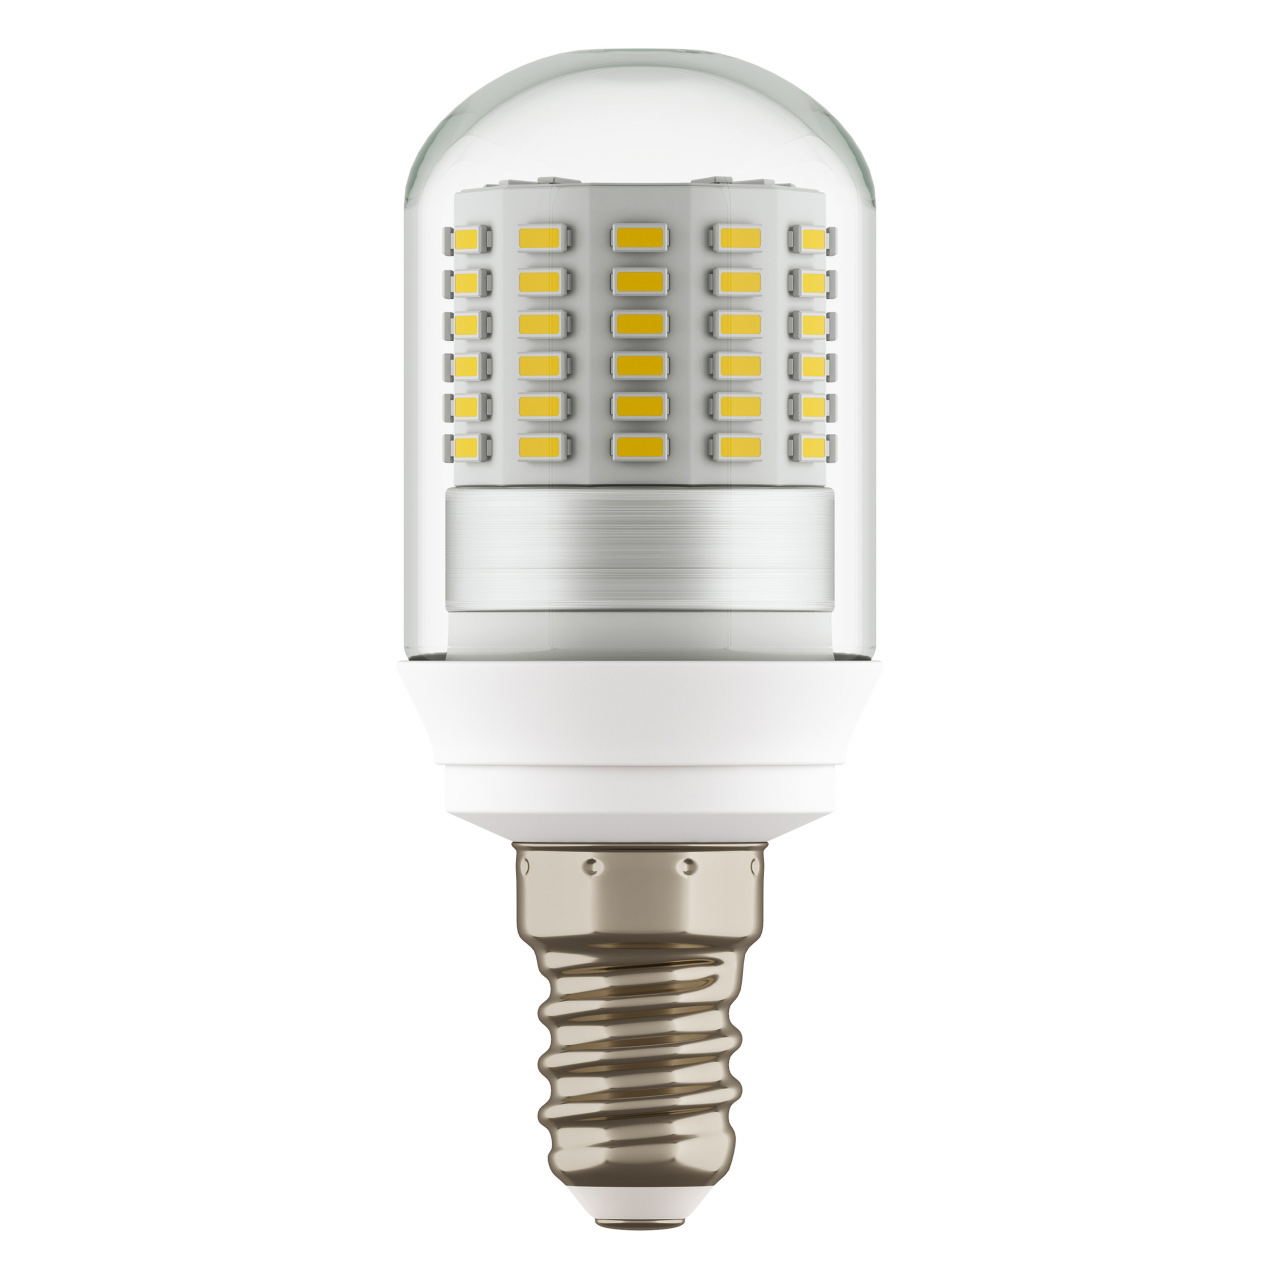 Лампа LED 220V T35 E14 9W=90W 950LM 360G CL 4000K 20000H Lightstar 930704